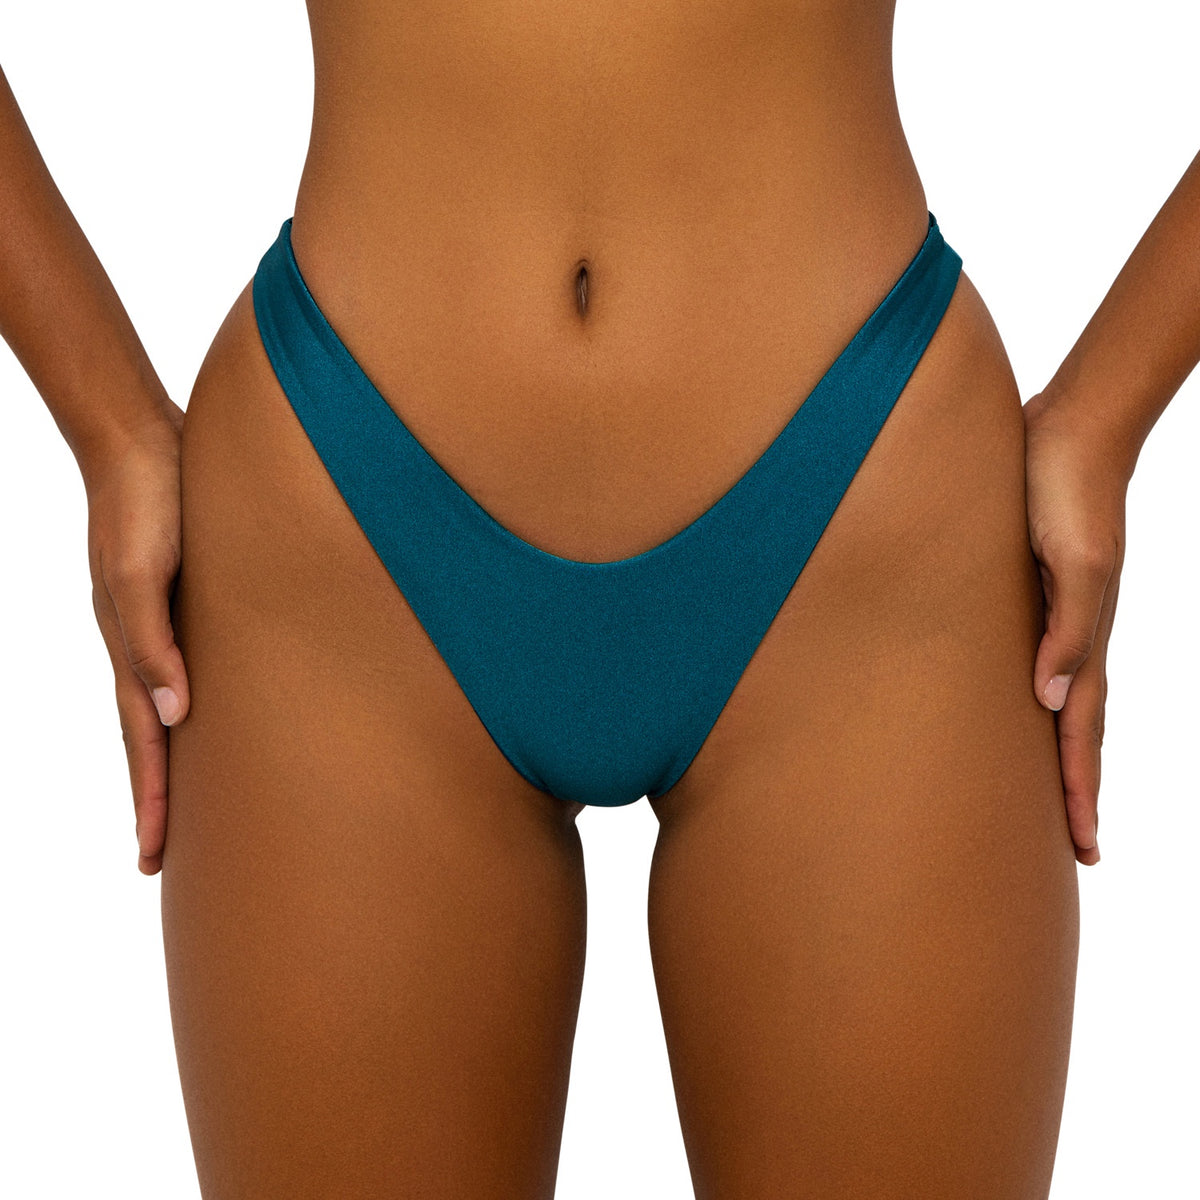 Zenith Bottoms Teal